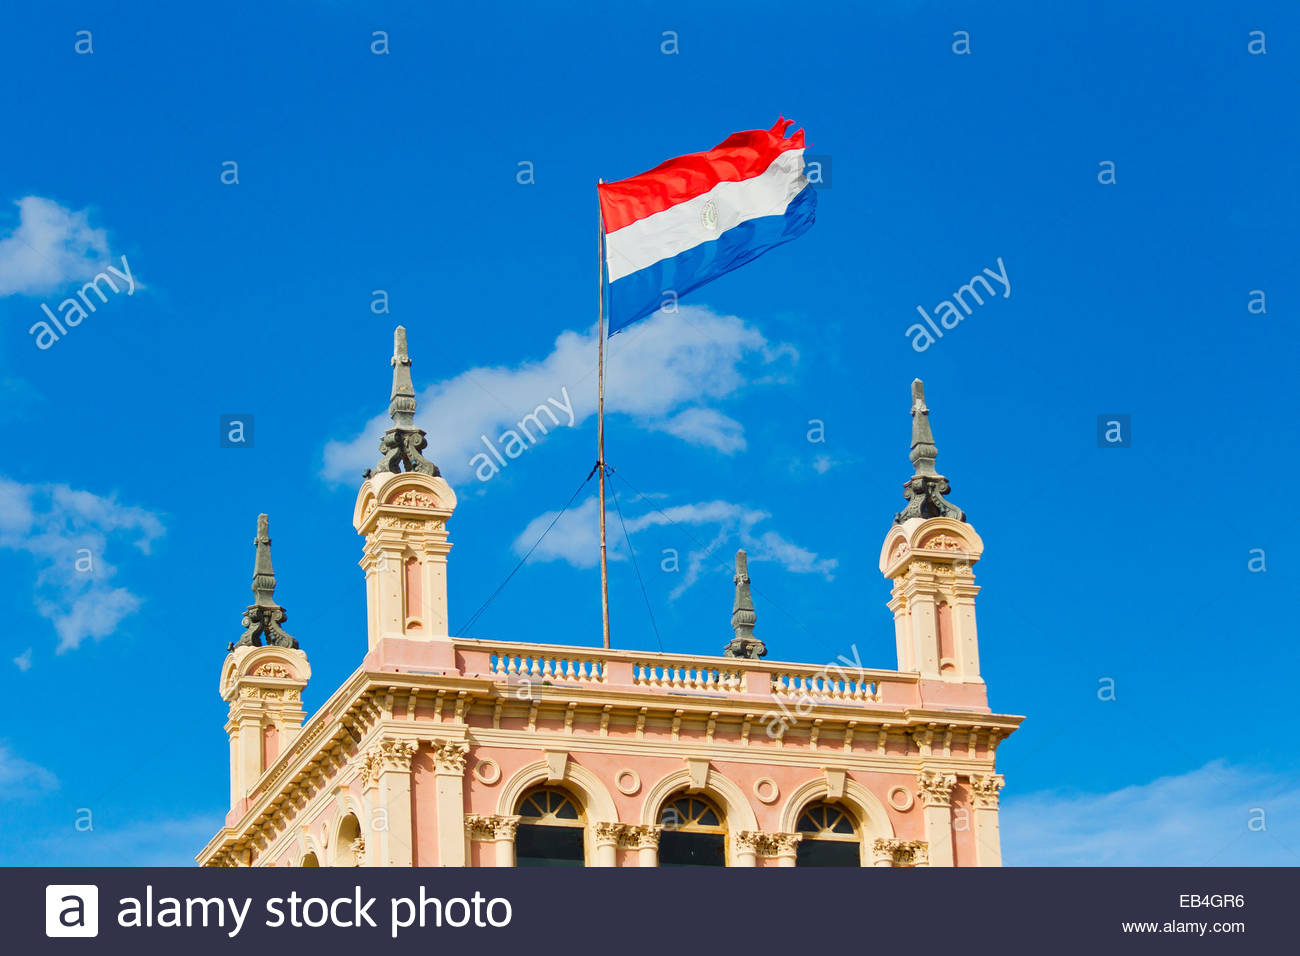 A flag of the Republic of Paraguay flying atop the Presidential palace. - Stock Image